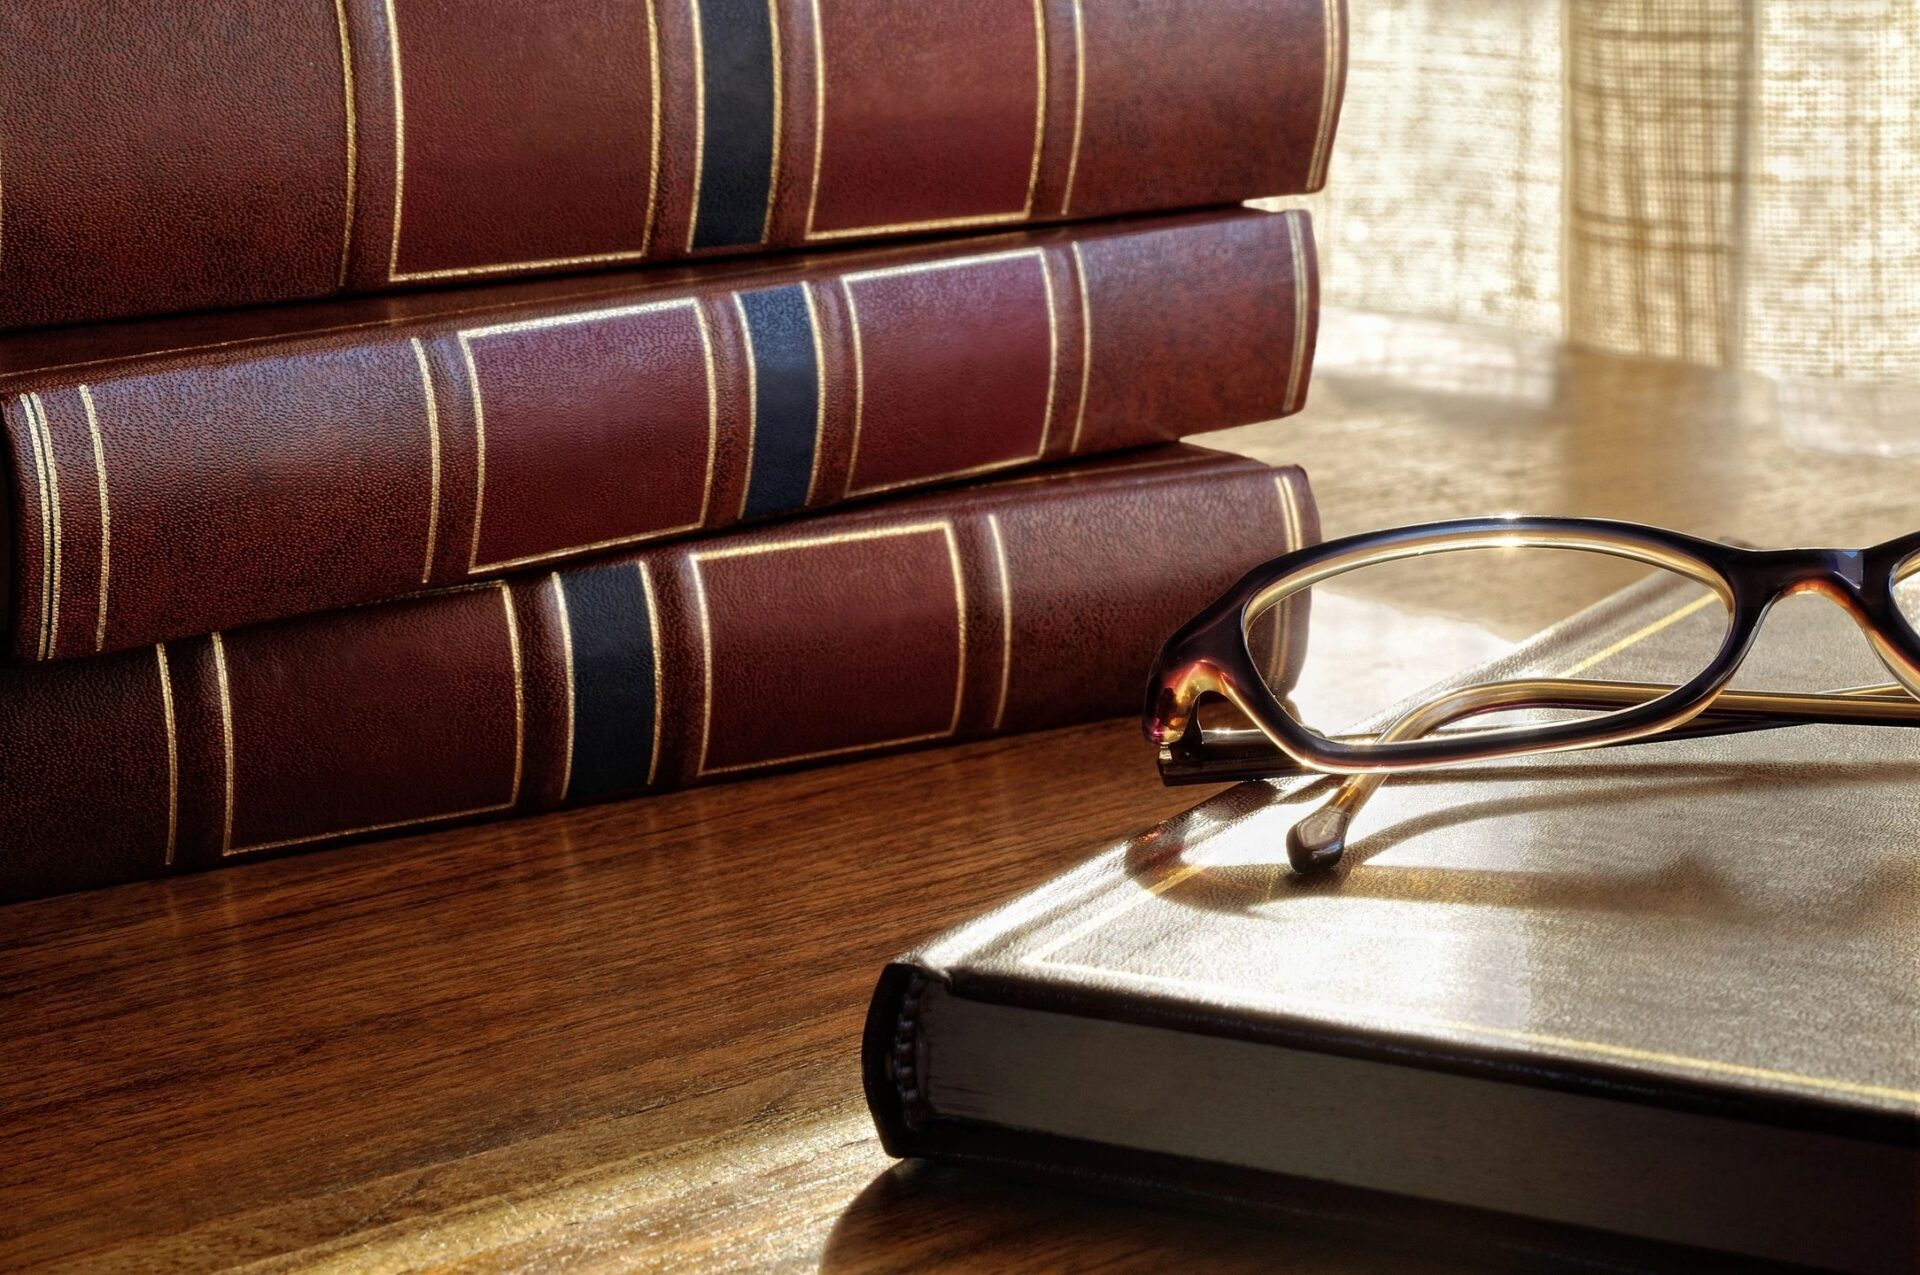 Books used by Criminal Defense Lawyer for Drug Charges, Domestic Assault, Marijuana, Cannabis, and Violation of Probation in Dickson TN